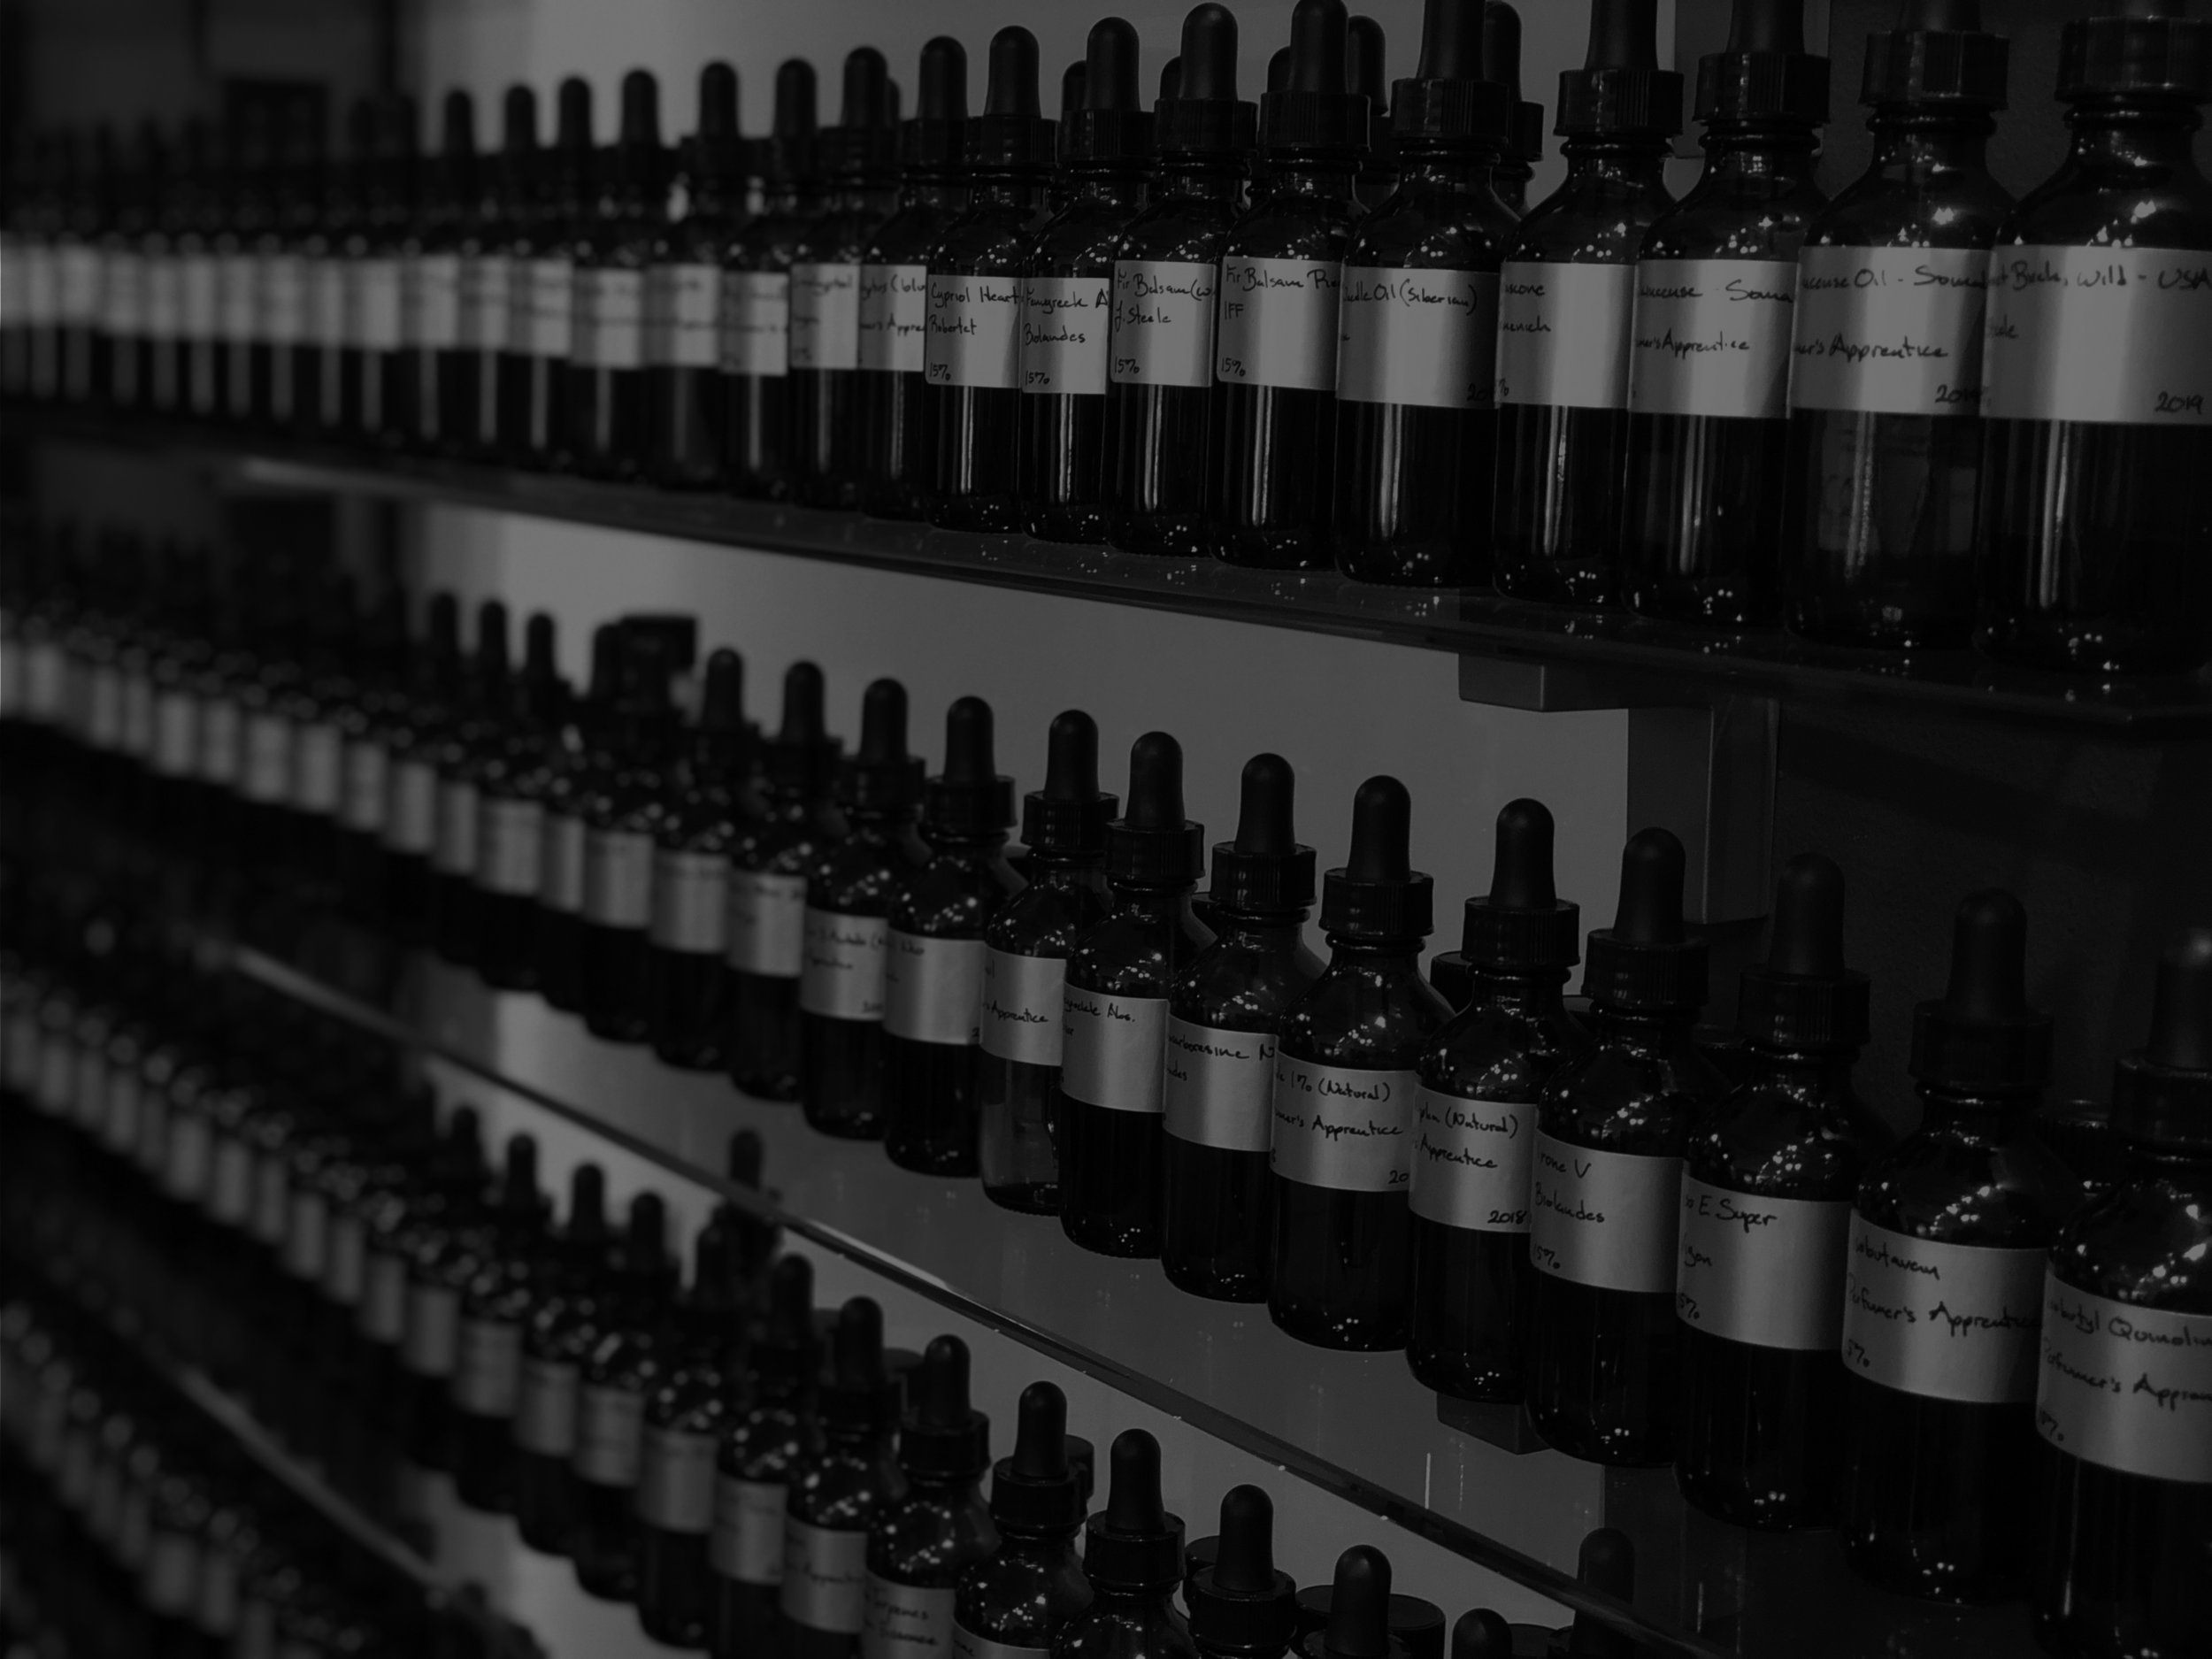 We're a boutique fragrance studio distilling your brand's stories into scent -